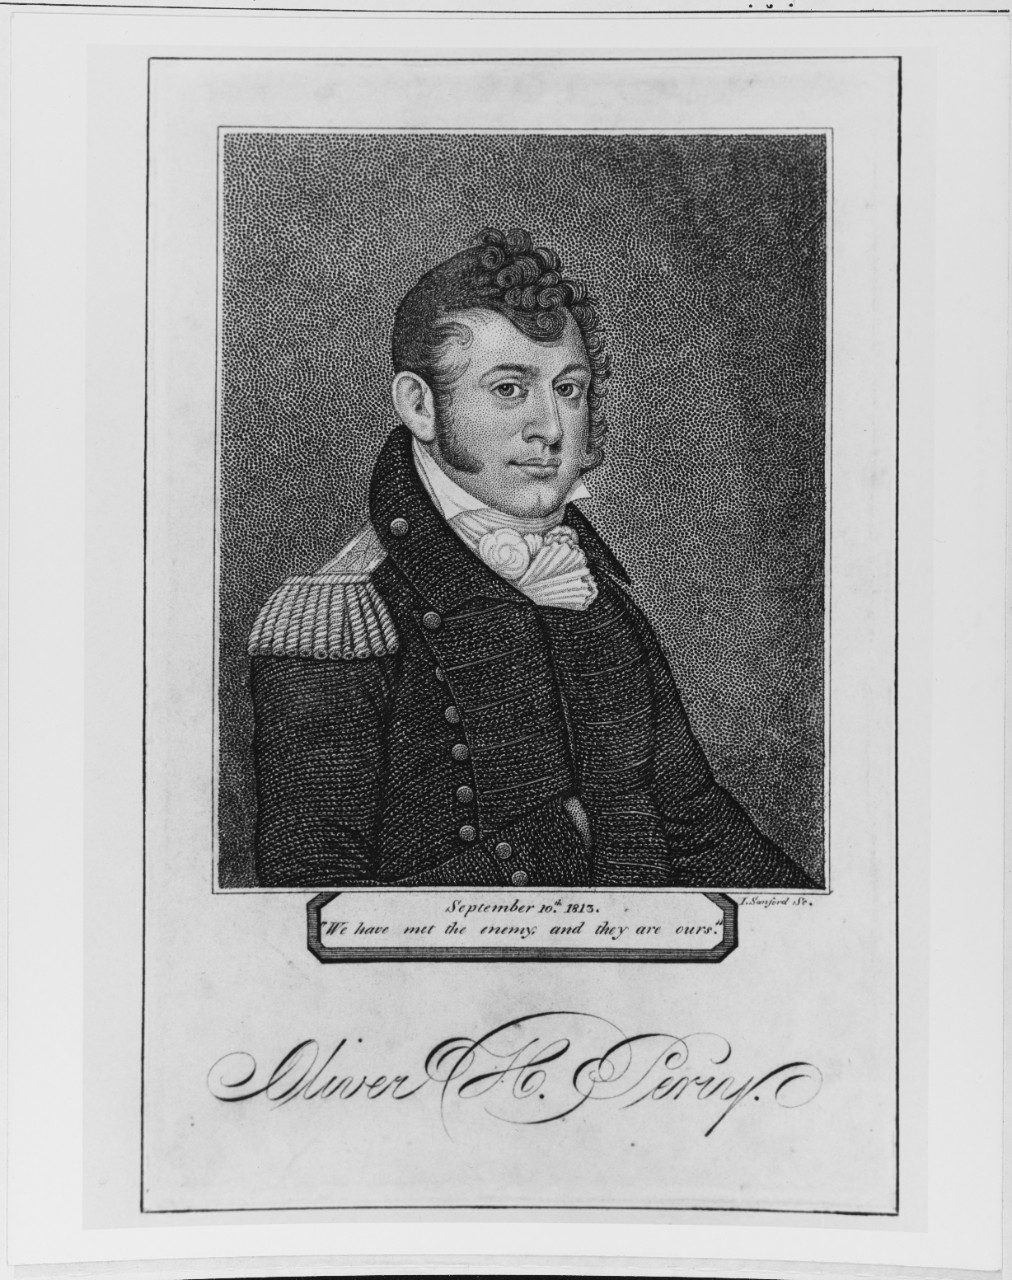 Engraving of Como. Oliver H. Perry, USN, by I. Sanford, St. Born South Kingston, R.I., 23 August 1785. (Naval History and Heritage Command Photograph NH 66660)